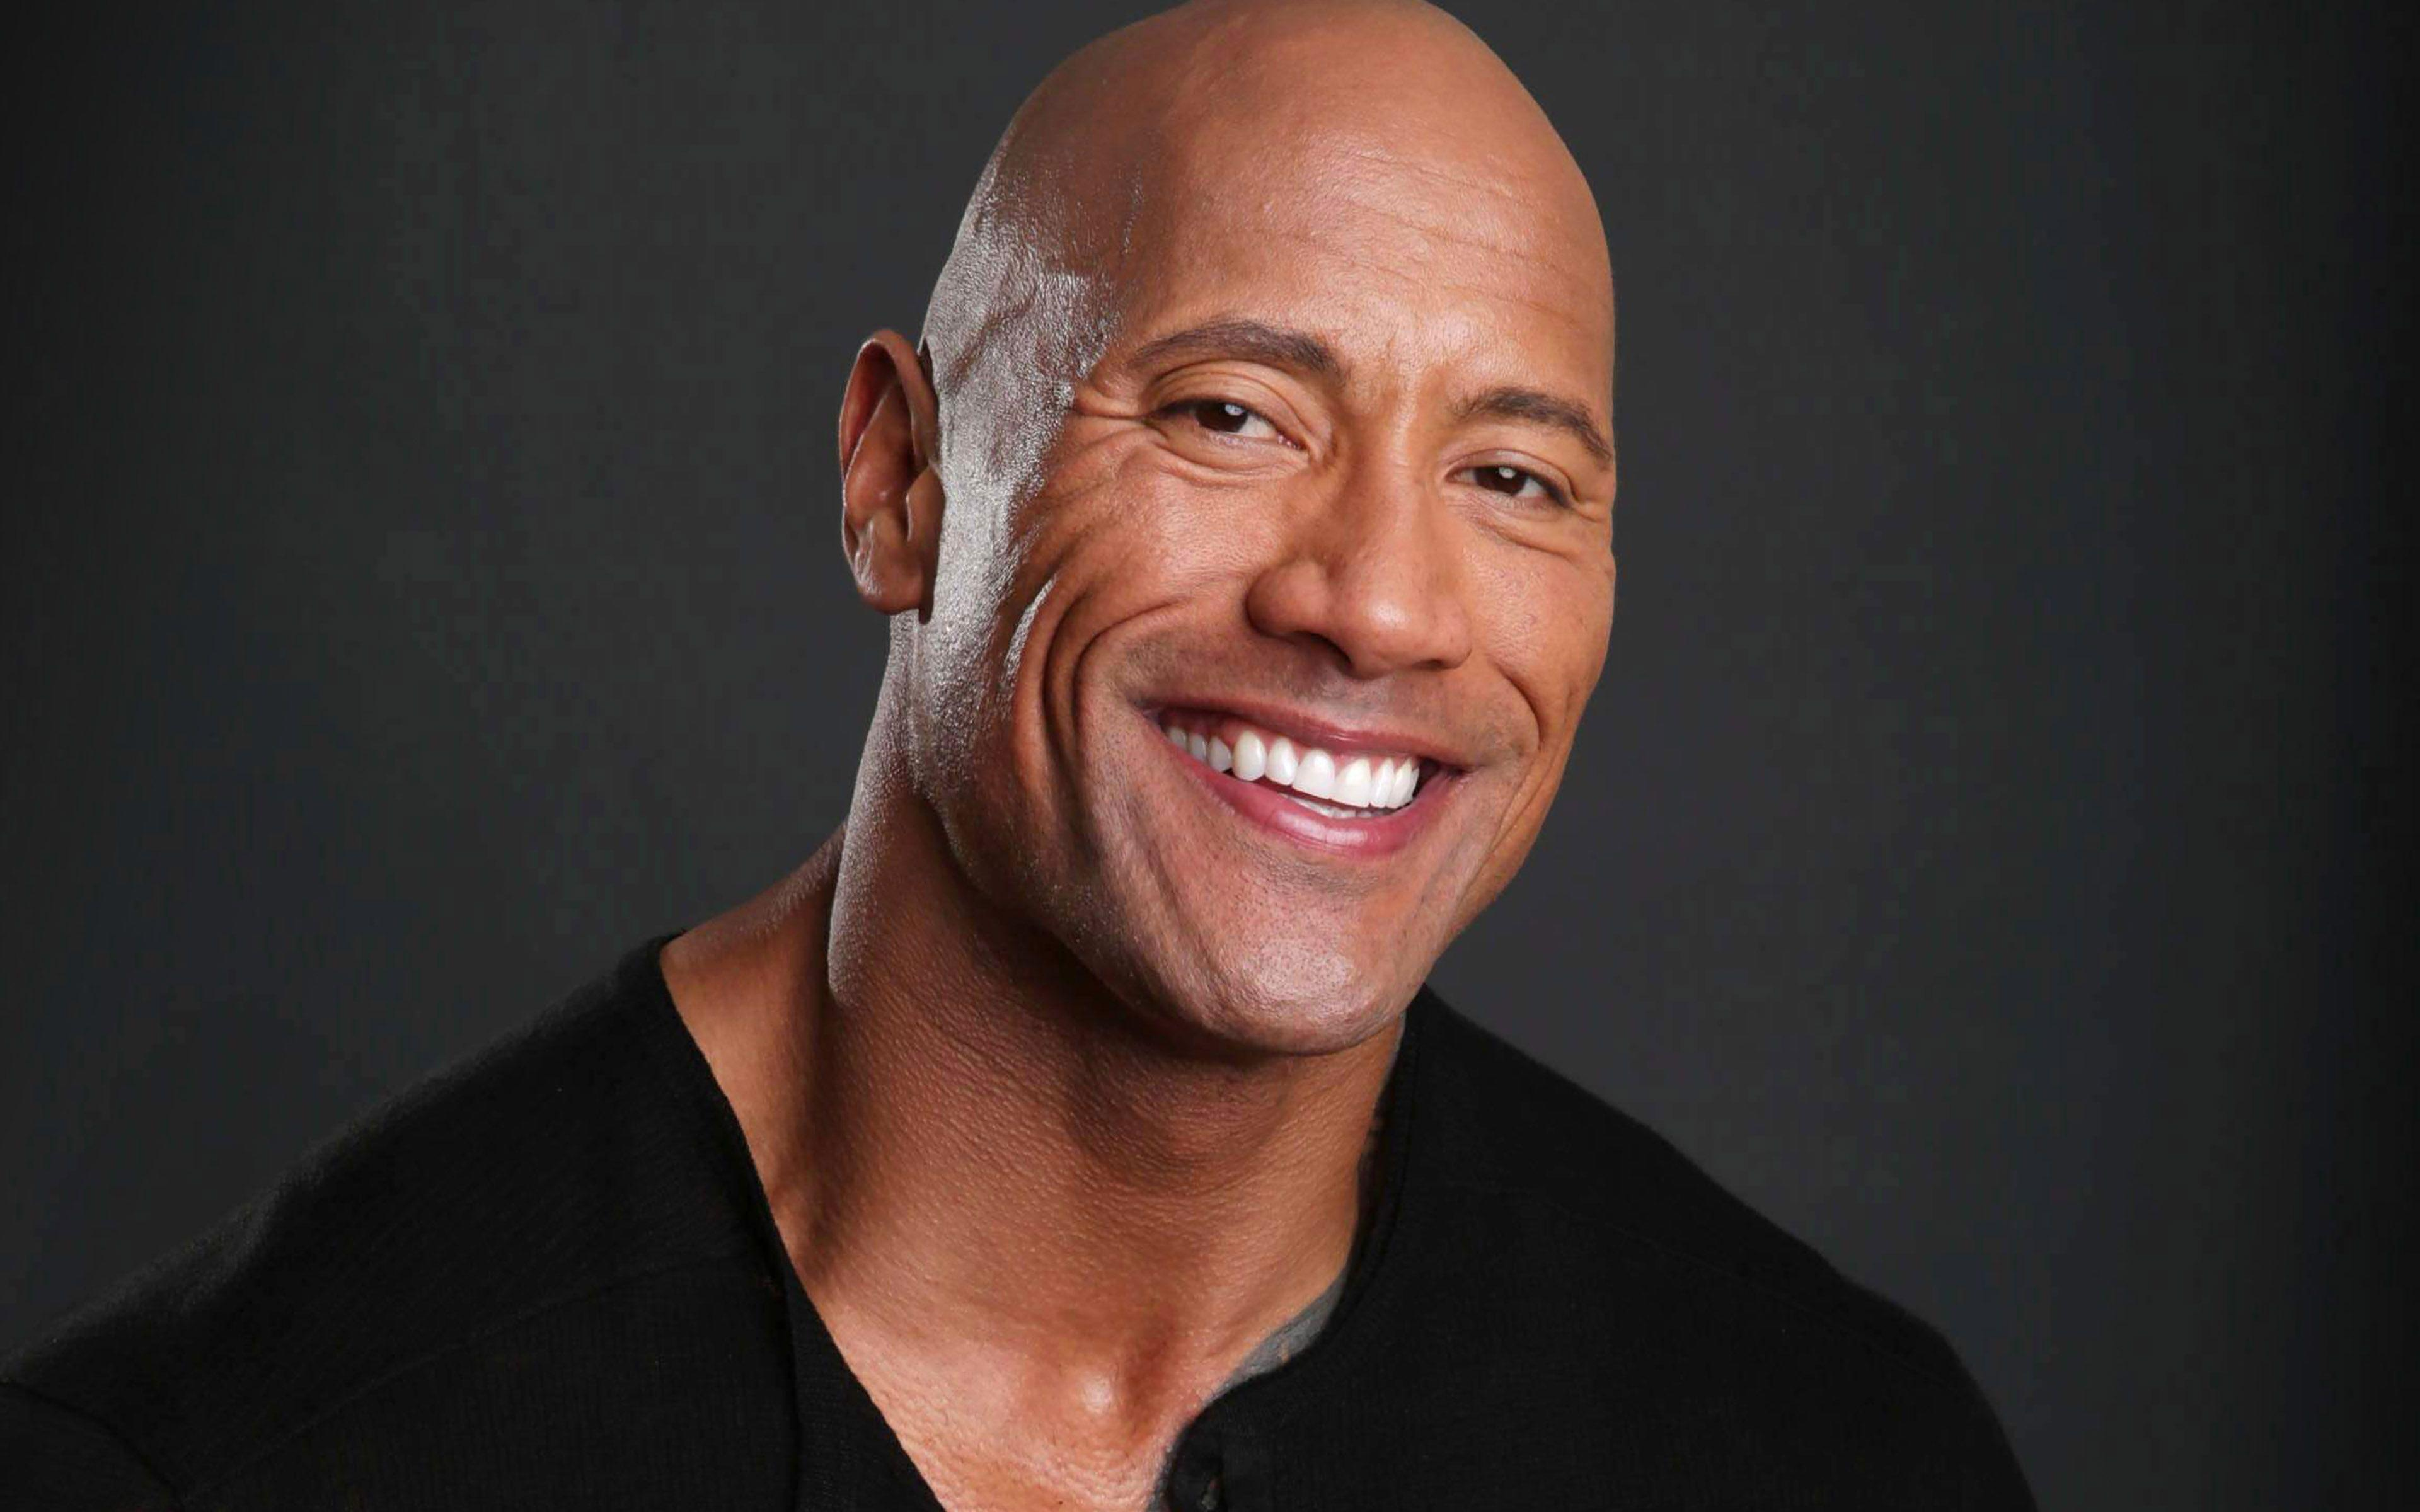 the rock dwayne johnson actor, celebrity